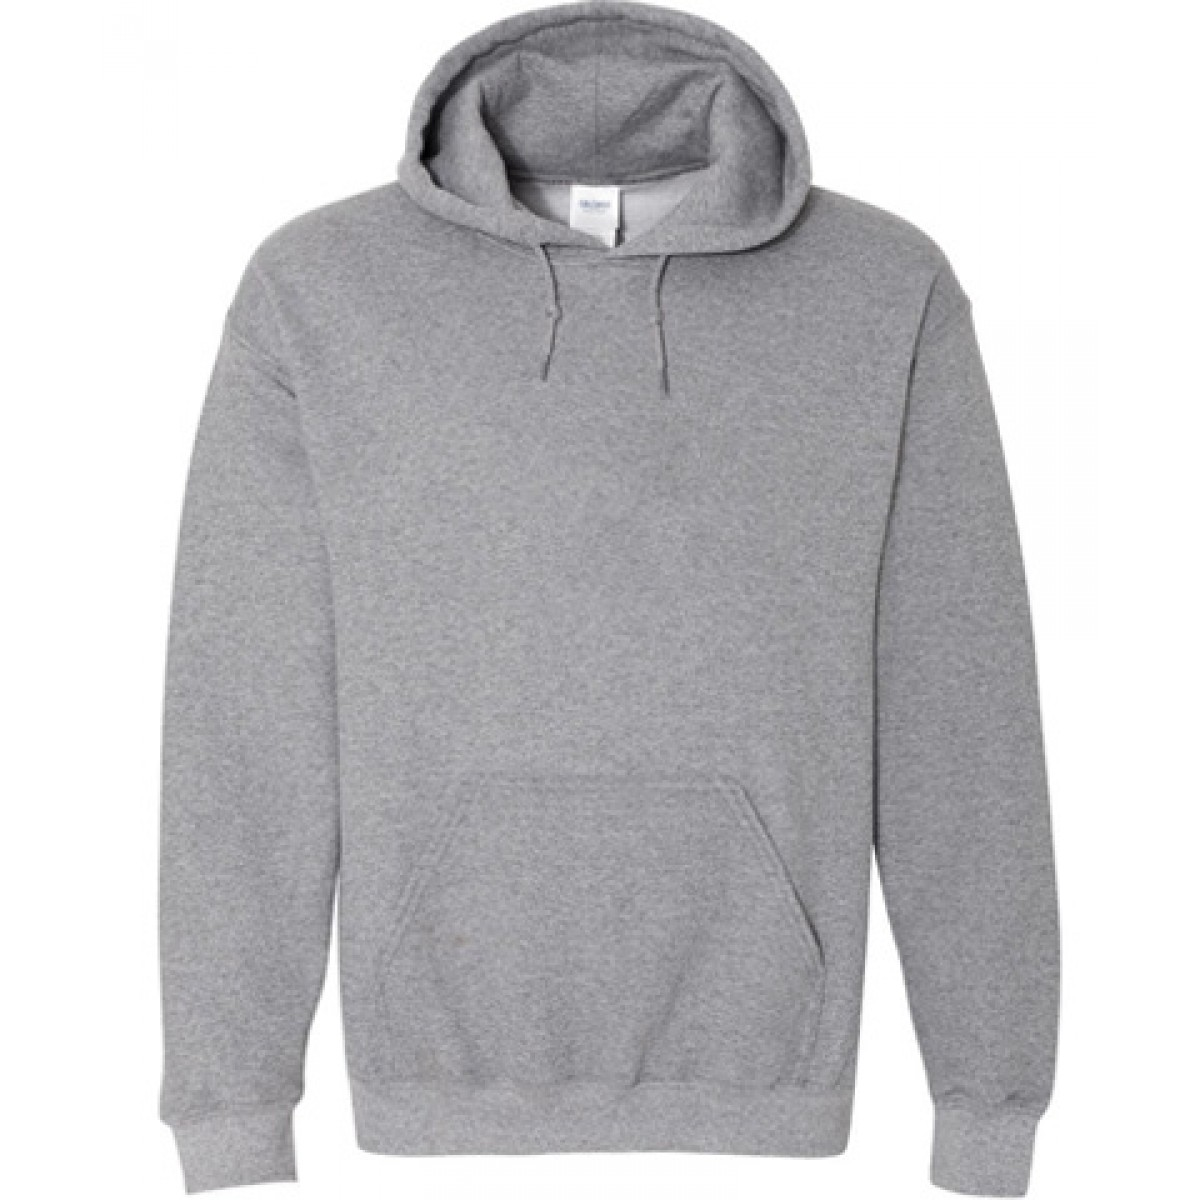 Hooded Sweatshirt 50/50 Heavy Blend-Gray-YM